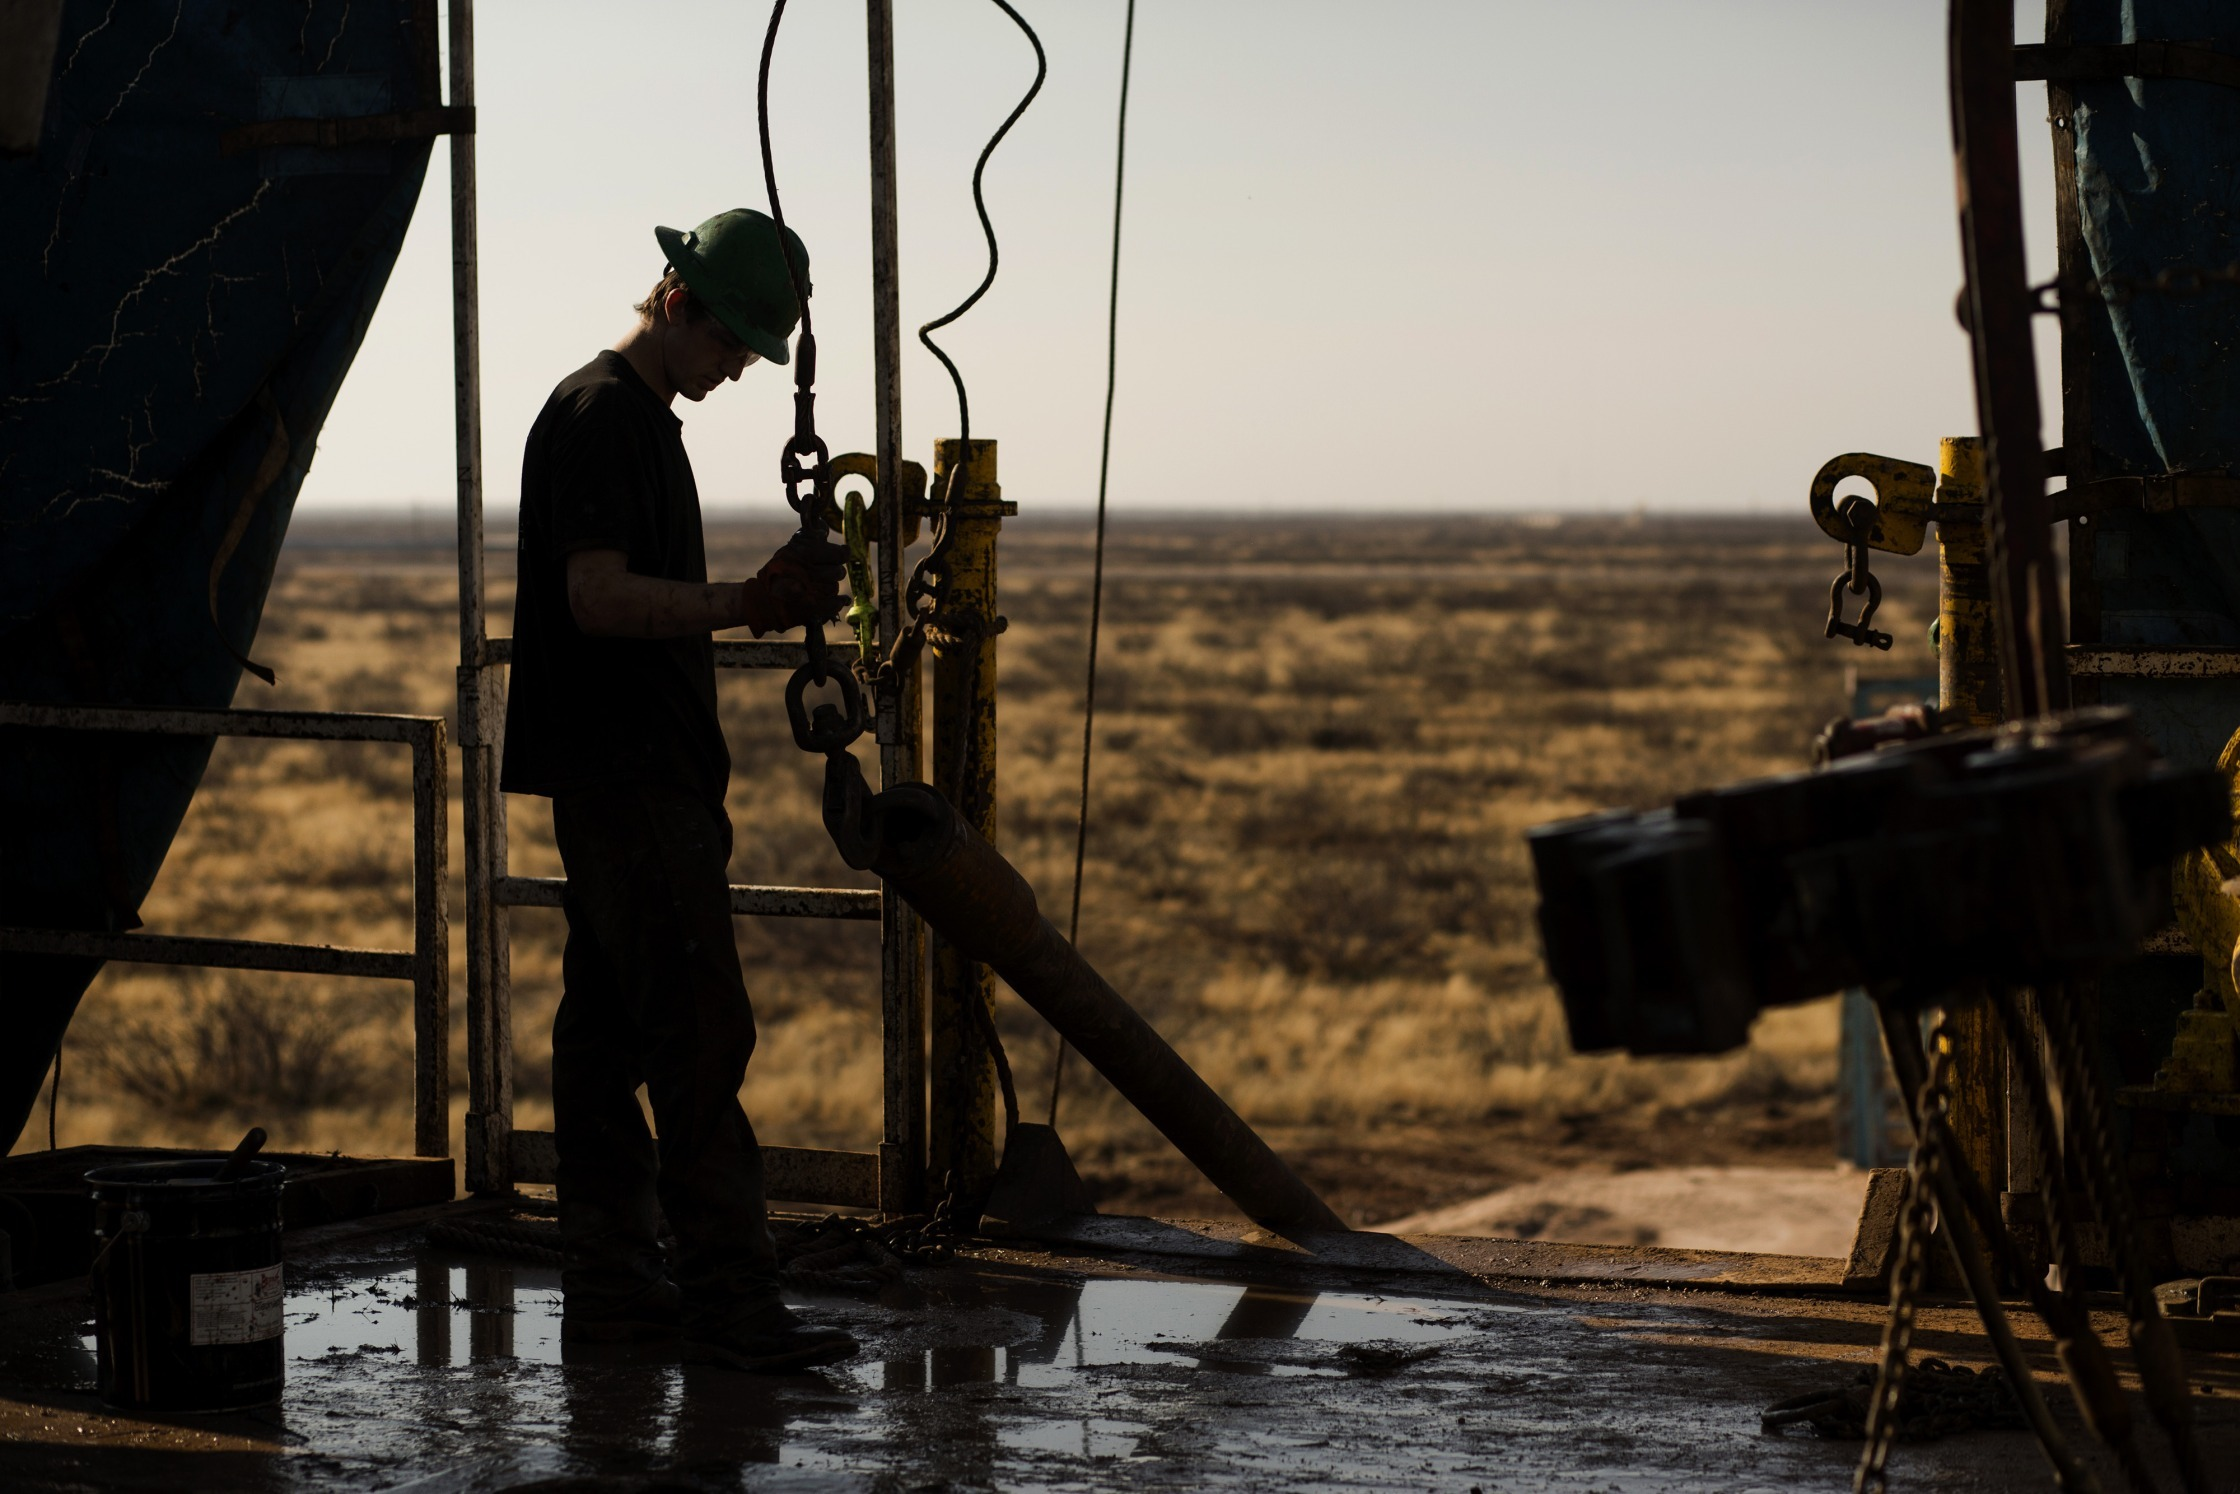 A worker waits to connect a drill bit on Endeavor Energy Resources LP's Big Dog Drilling Rig 22 in the Permian basin outside of Midland, Texas, U.S. Photographer: Brittany Sowacke/Bloomberg